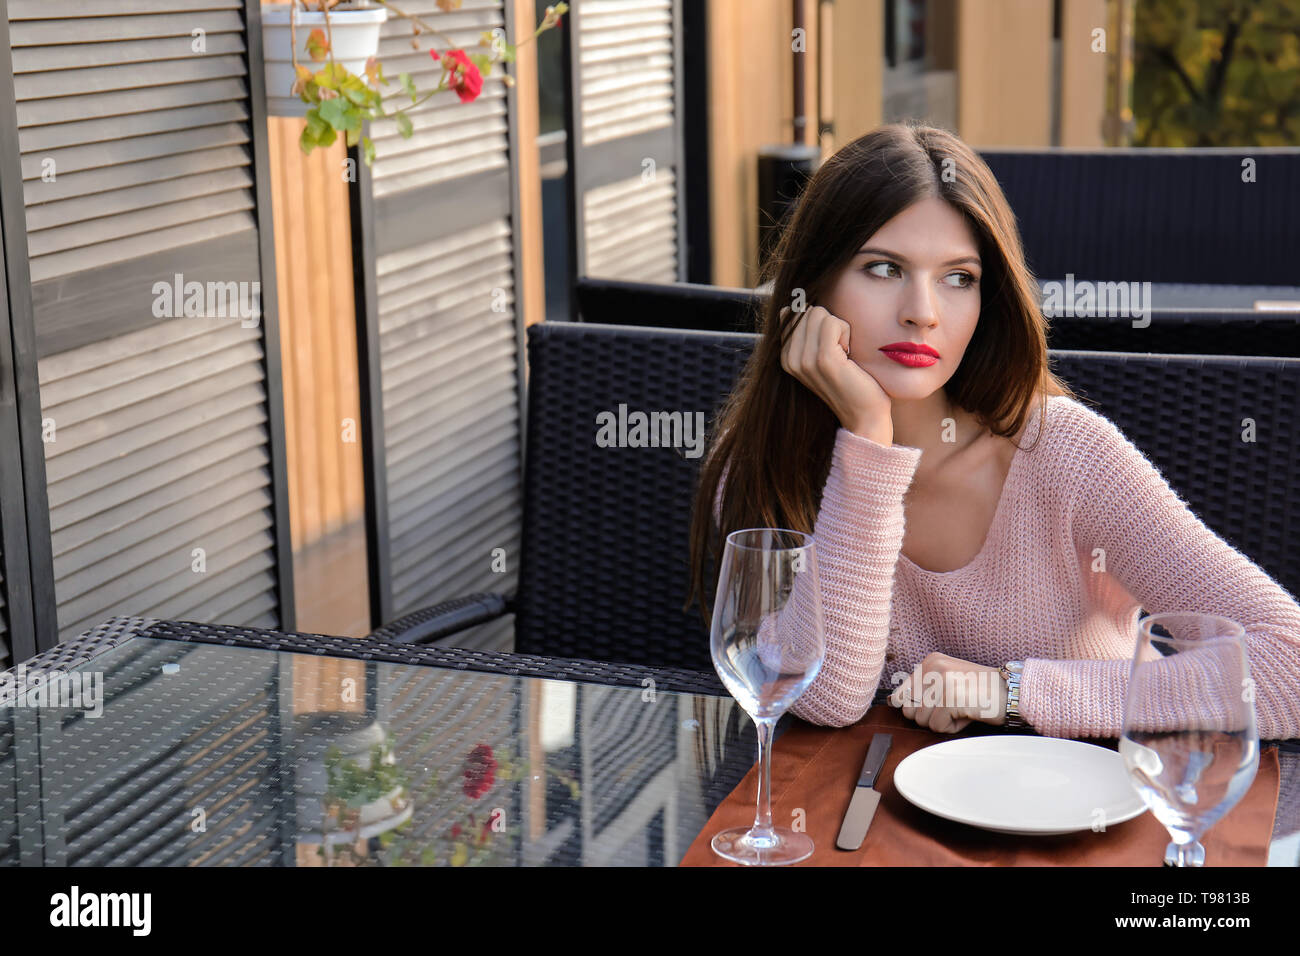 Young woman waiting for her boyfriend in cafe - Stock Image